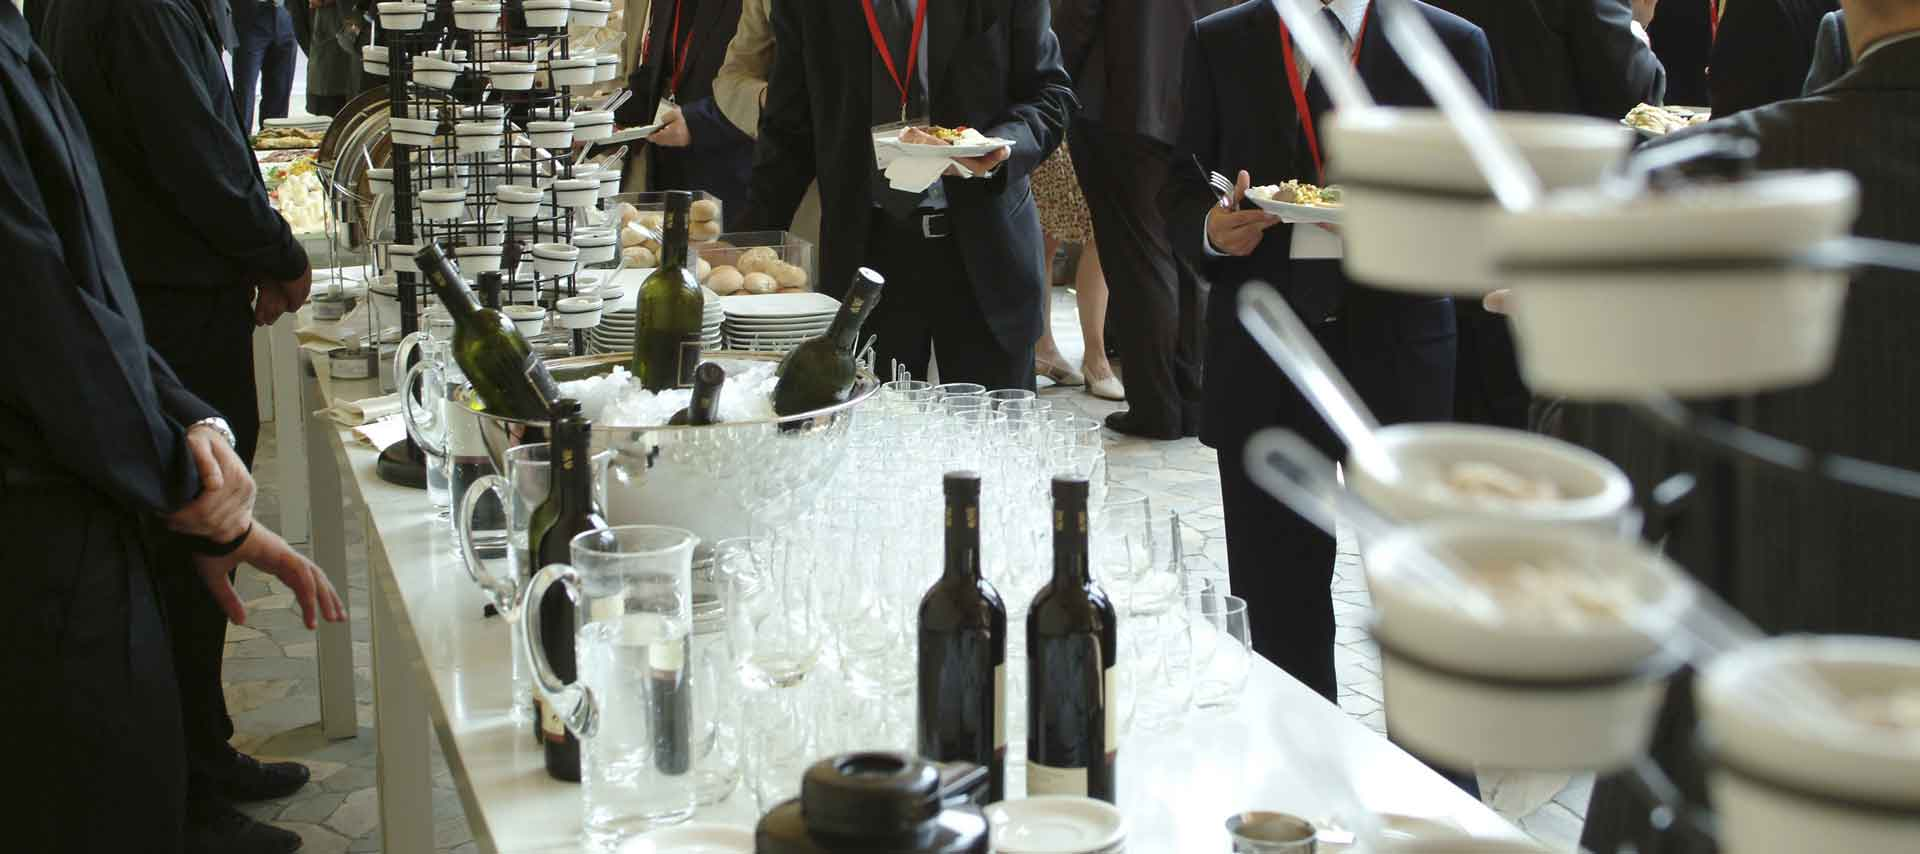 make-your-conference-run-smoothly-catering